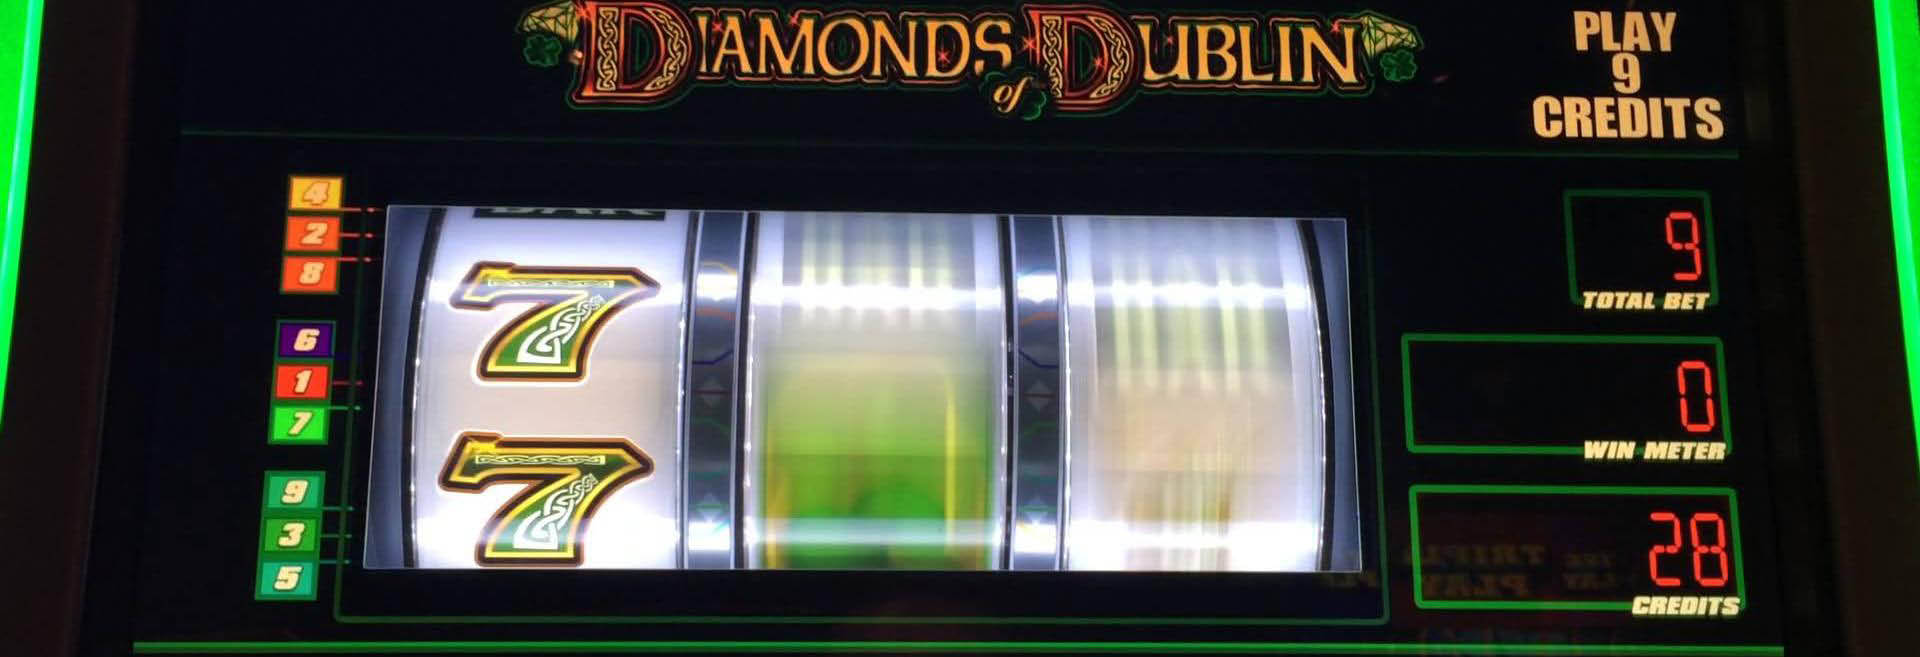 Diamonds of  Dublin video slot machine at Lacey's Place.